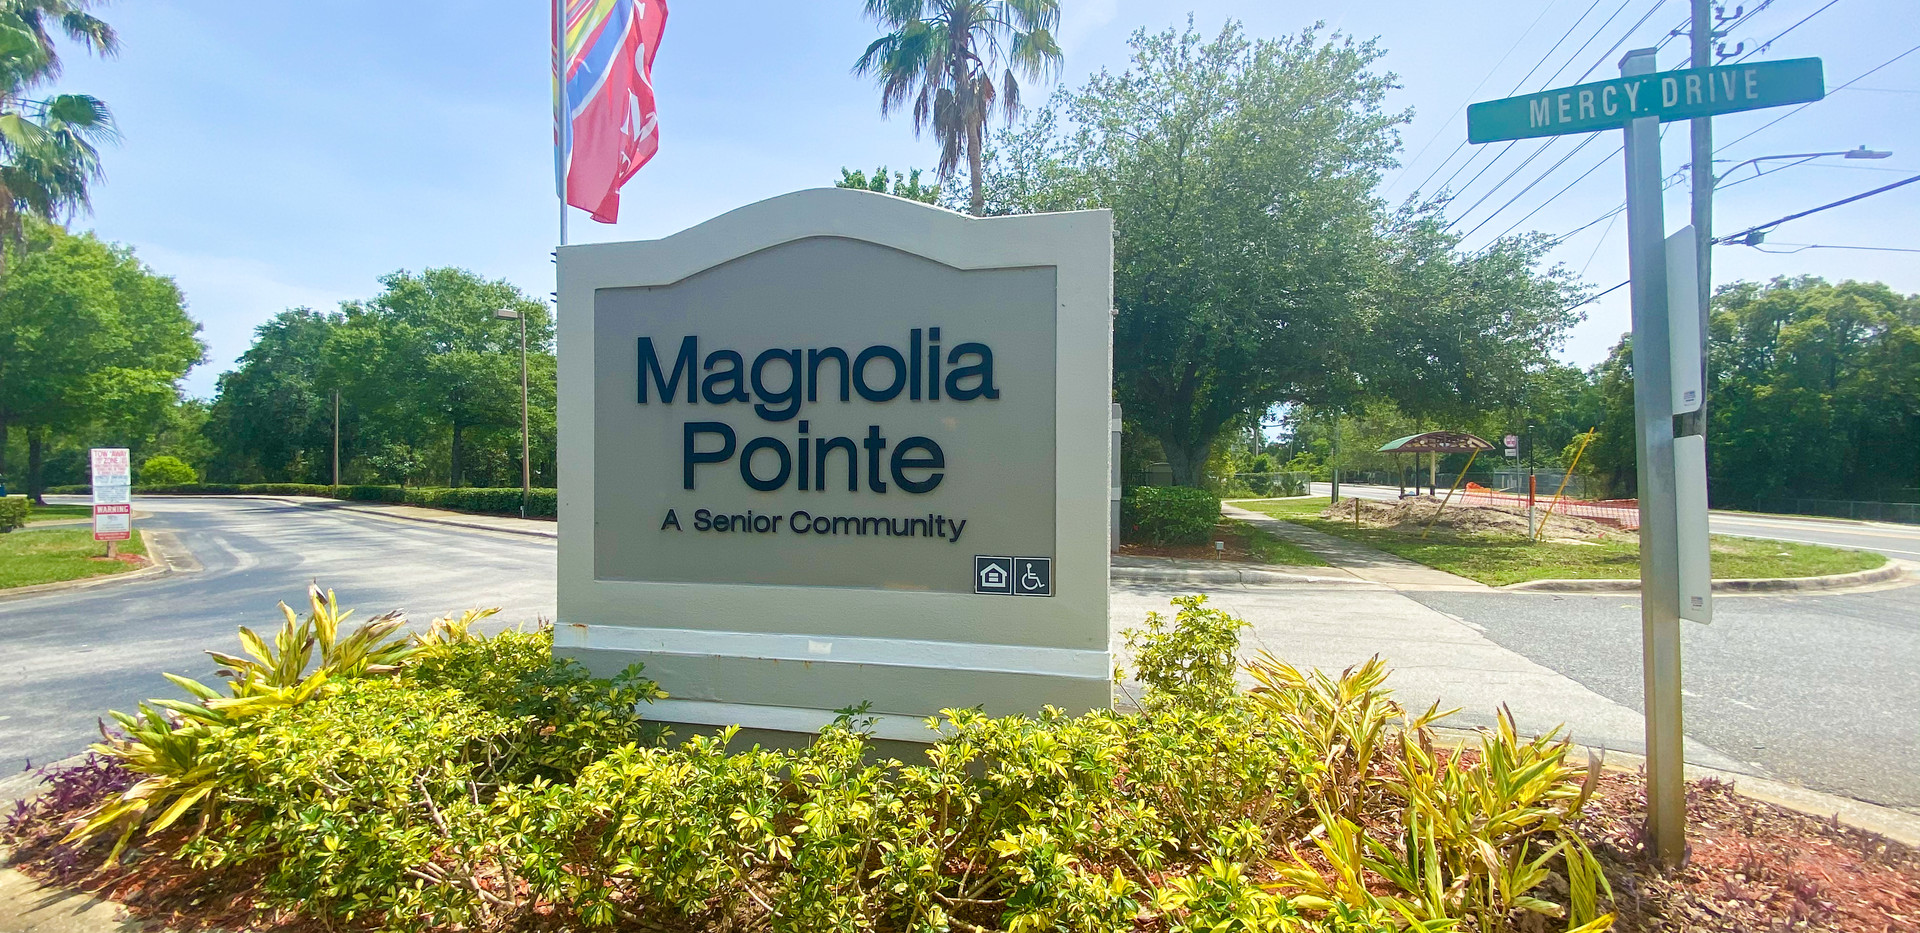 Magnolia Pointe welcome sign